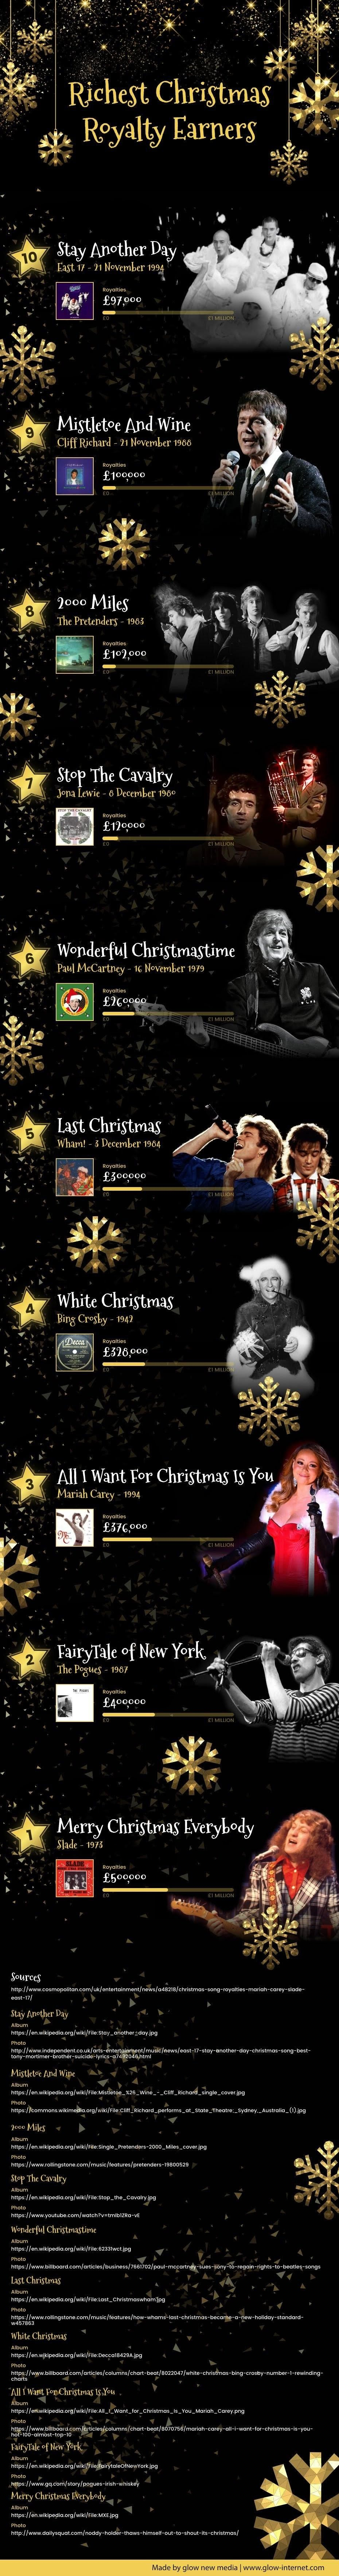 Richest Christmas Royalty Earners Infographic Celebrities Christmas Momey Music In 2020 Christmas Infographic Infographic Popular Christmas Songs